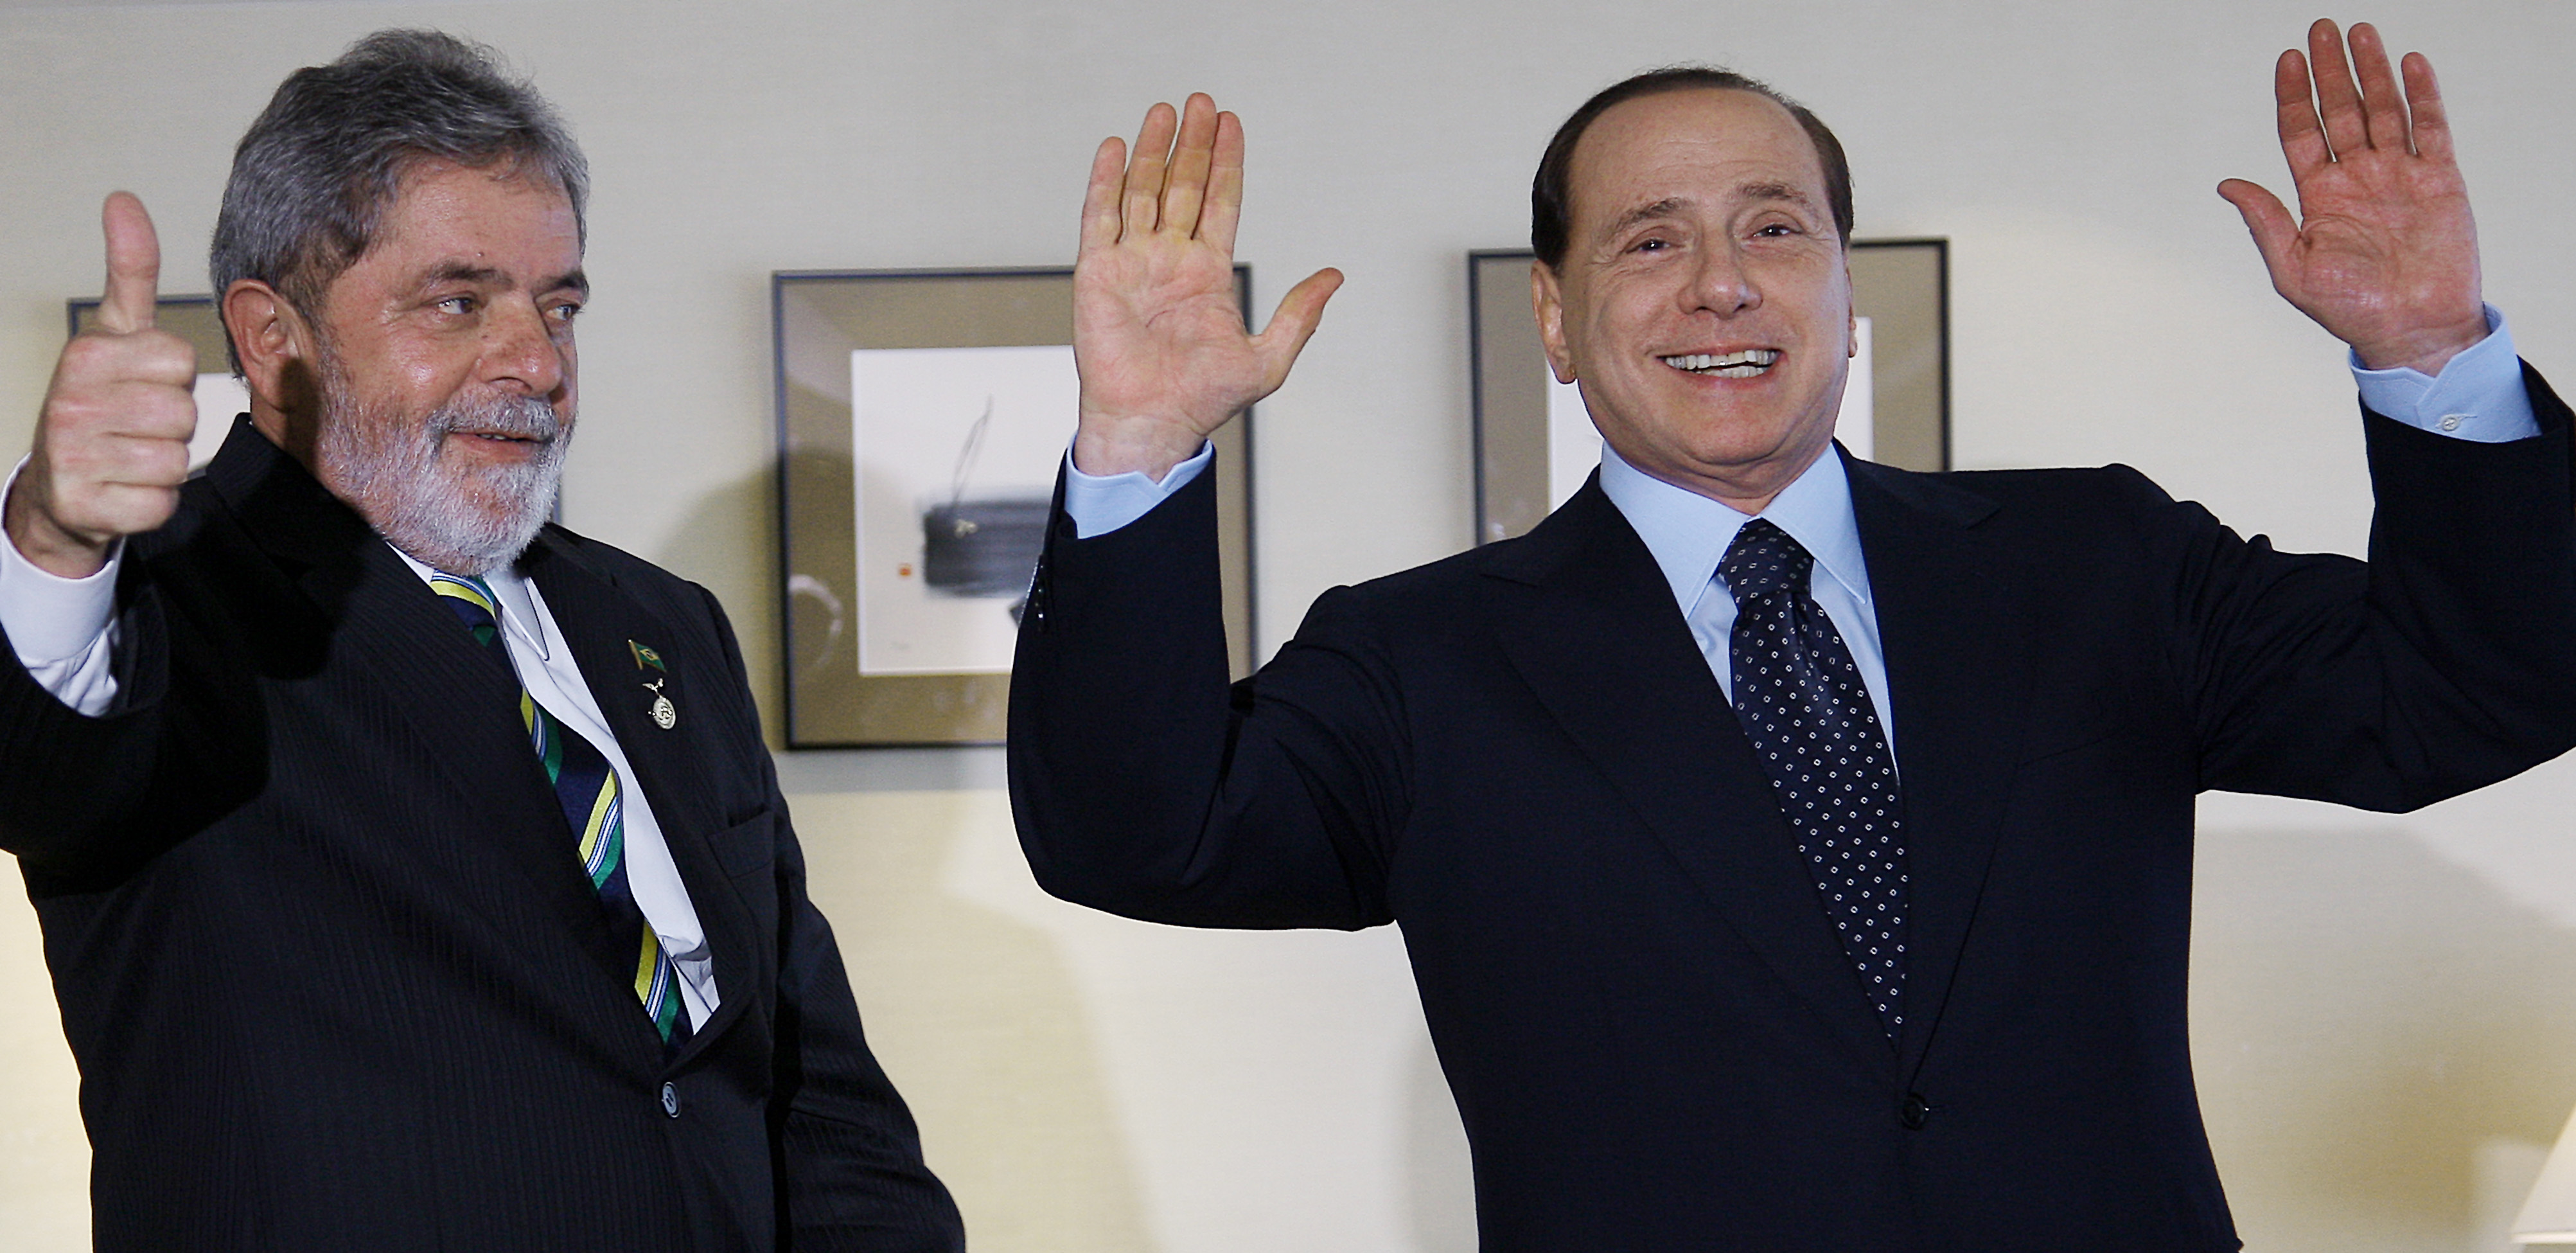 http://upload.wikimedia.org/wikipedia/commons/6/63/Luiz_Inacio_Lula_da_Silva_and_Silvio_Berlusconi_20080709.jpg